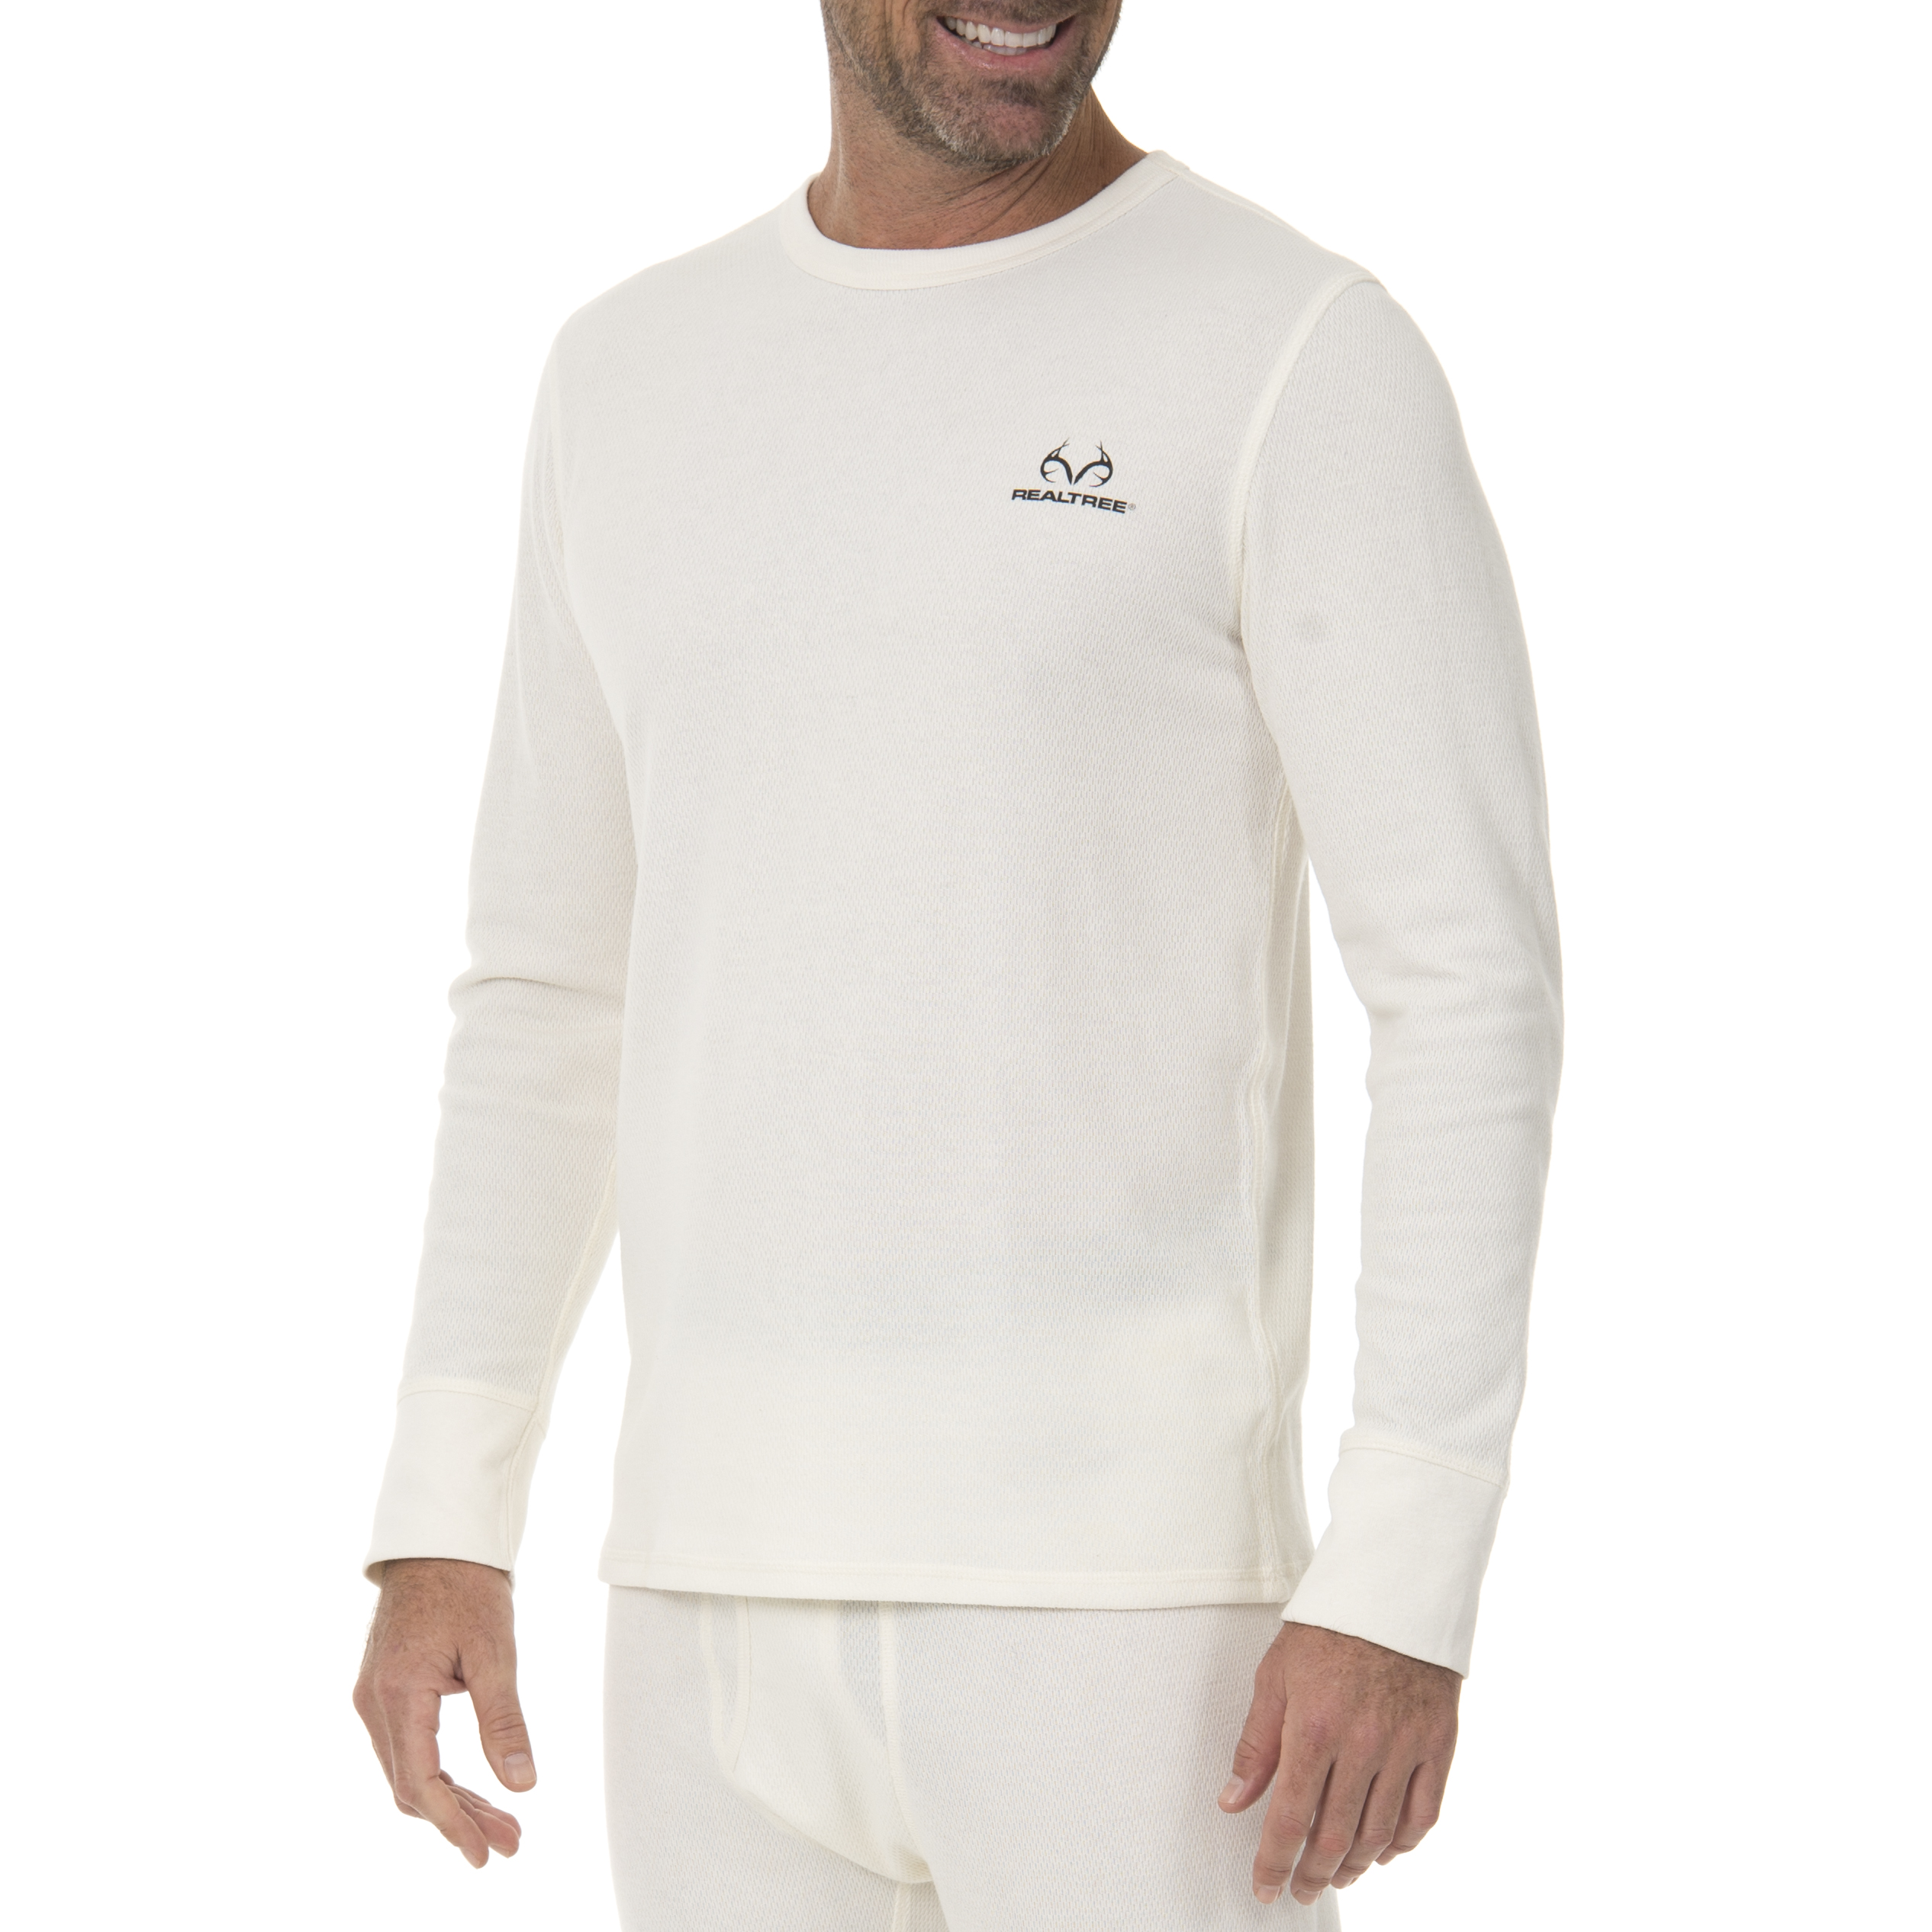 Realtree Men's Heavyweight Cotton Thermal Top by IVORY DIV OF INTRADECO